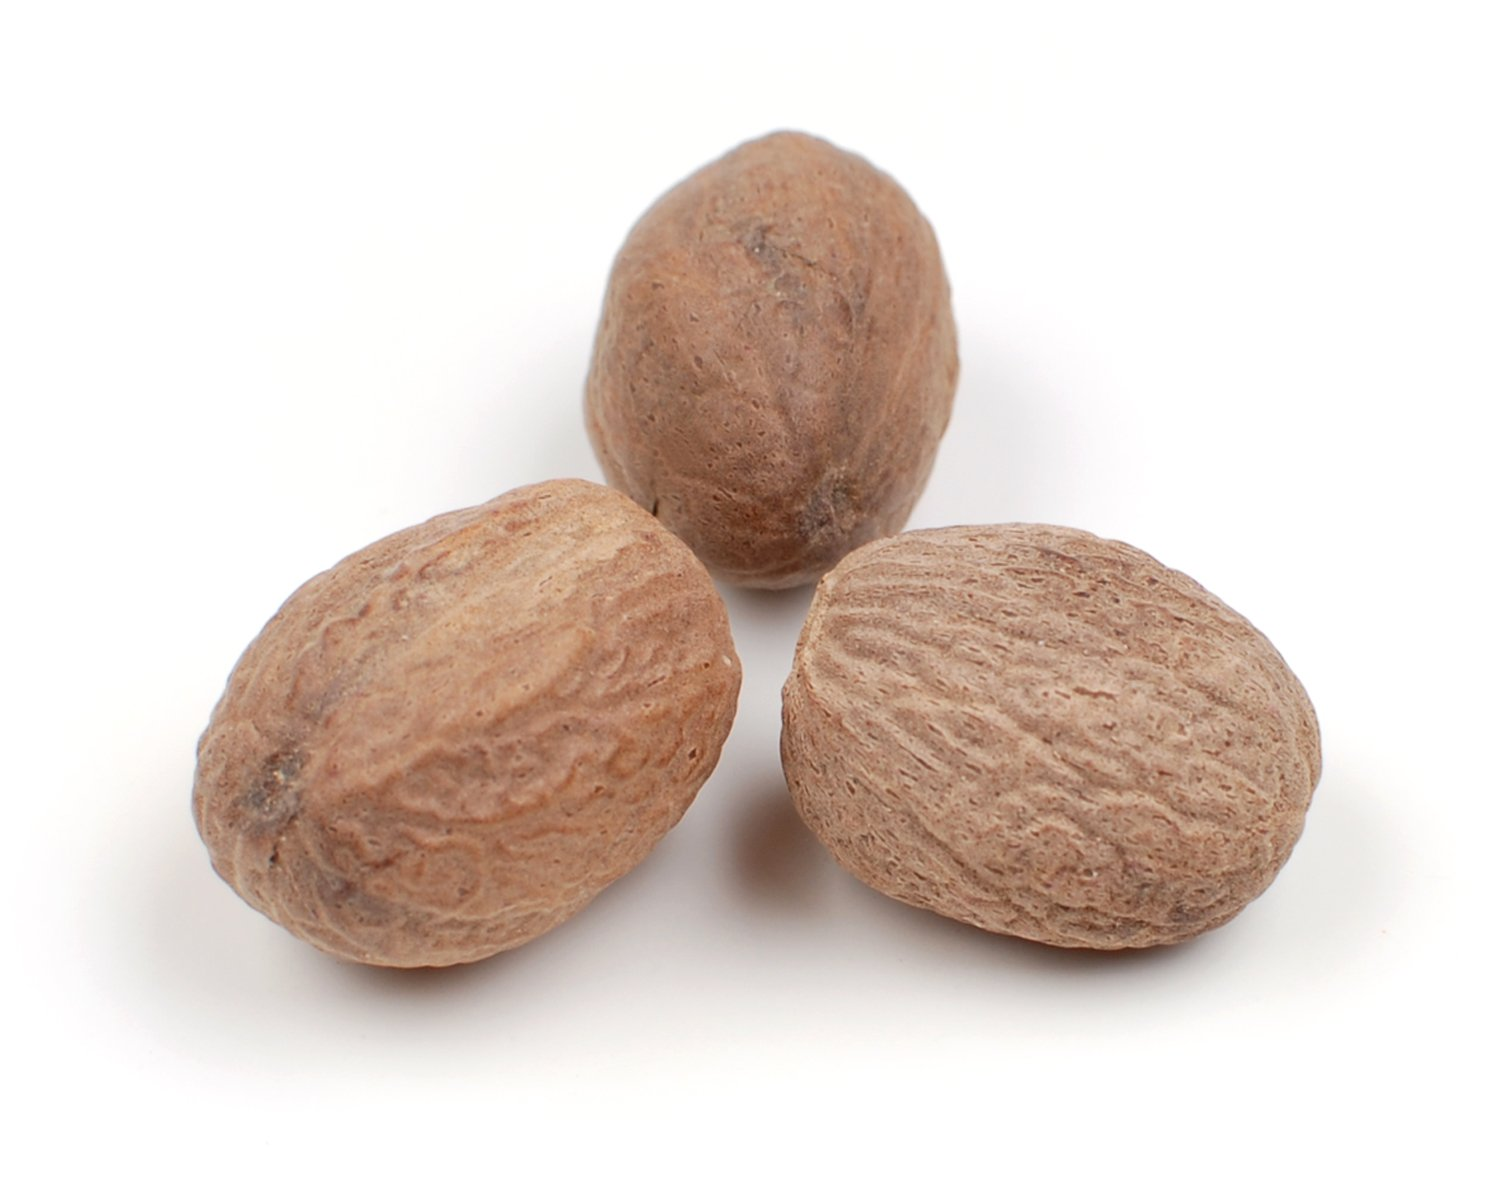 Nutmeg, Whole - 9 Lb Bag / Box Each by Angelina's Gourmet